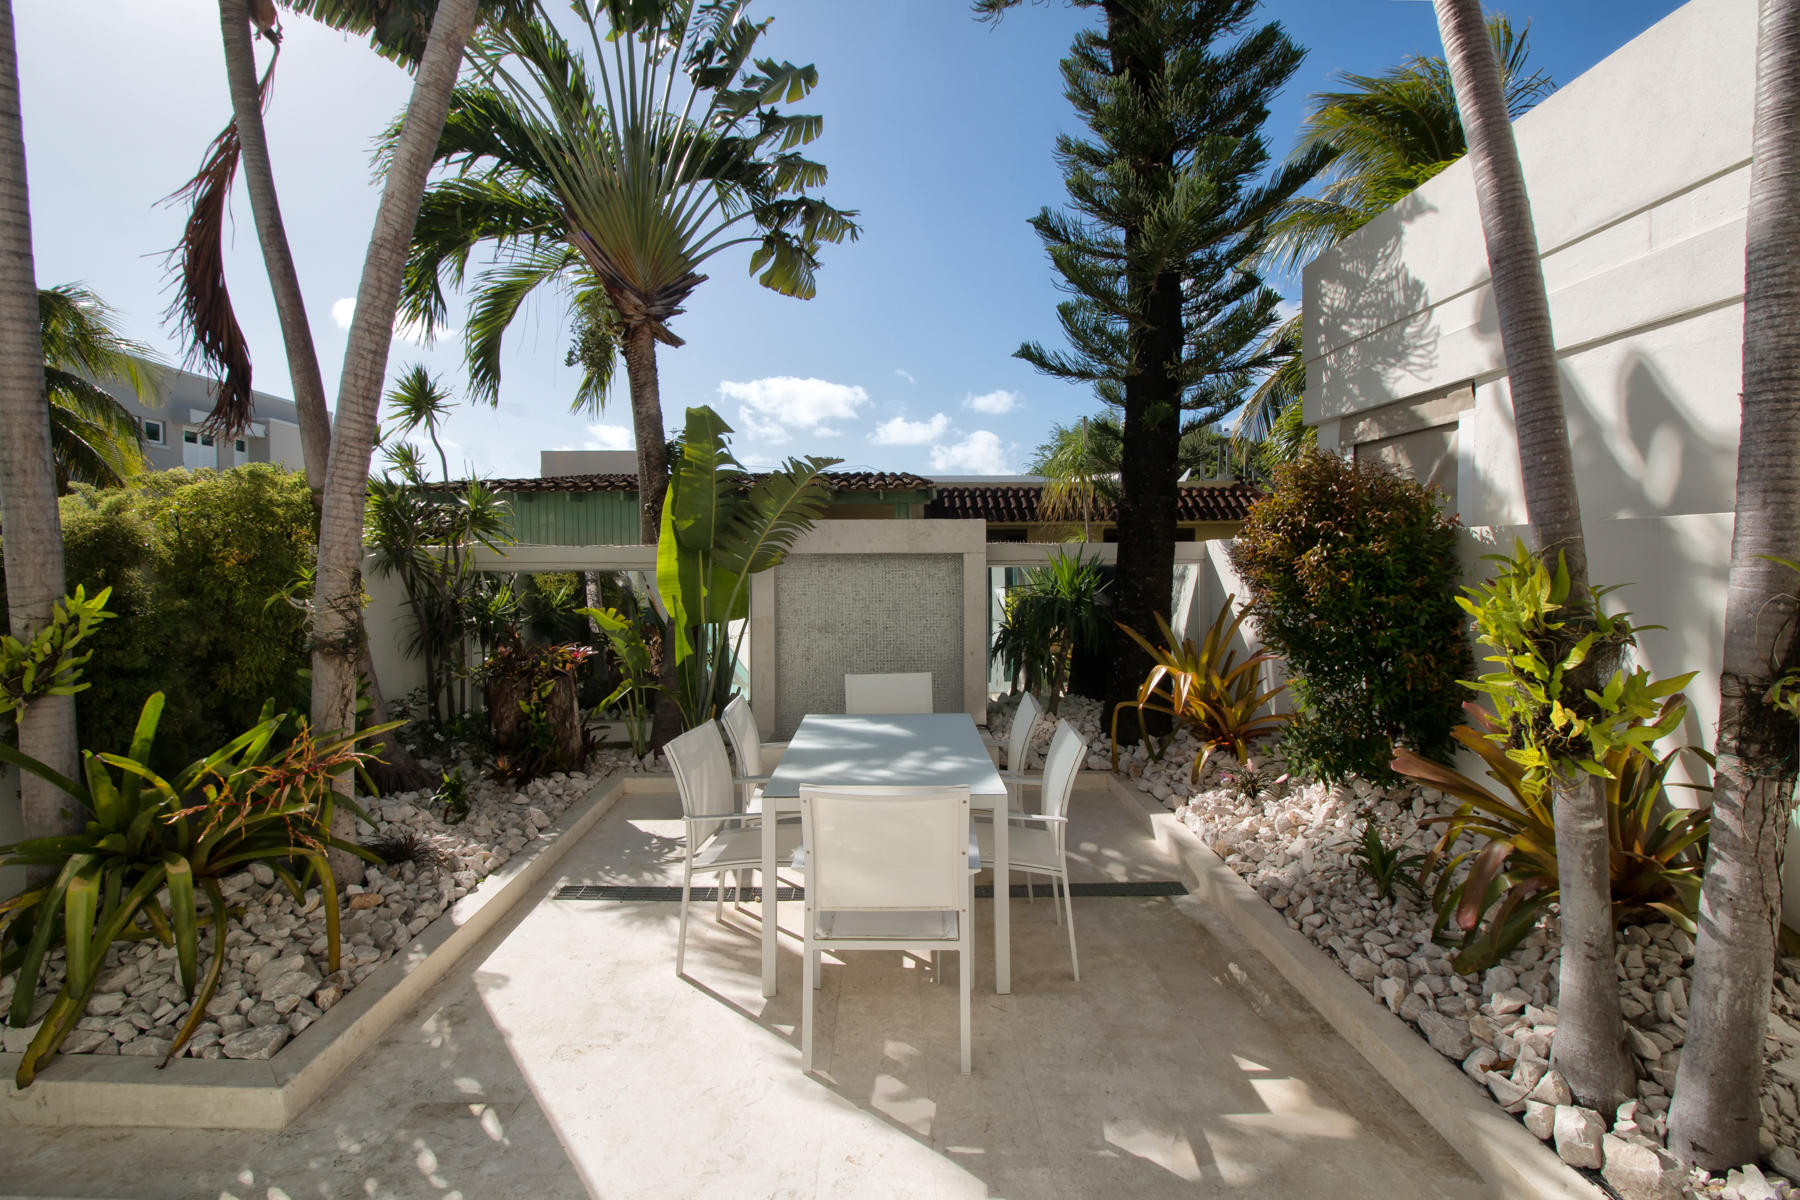 Additional photo for property listing at Gut Renovated Off Water Townhouse, Punta Las Marias 8E Calle Inga Chalets De Mar San Juan, Puerto Rico 00913 Puerto Rico